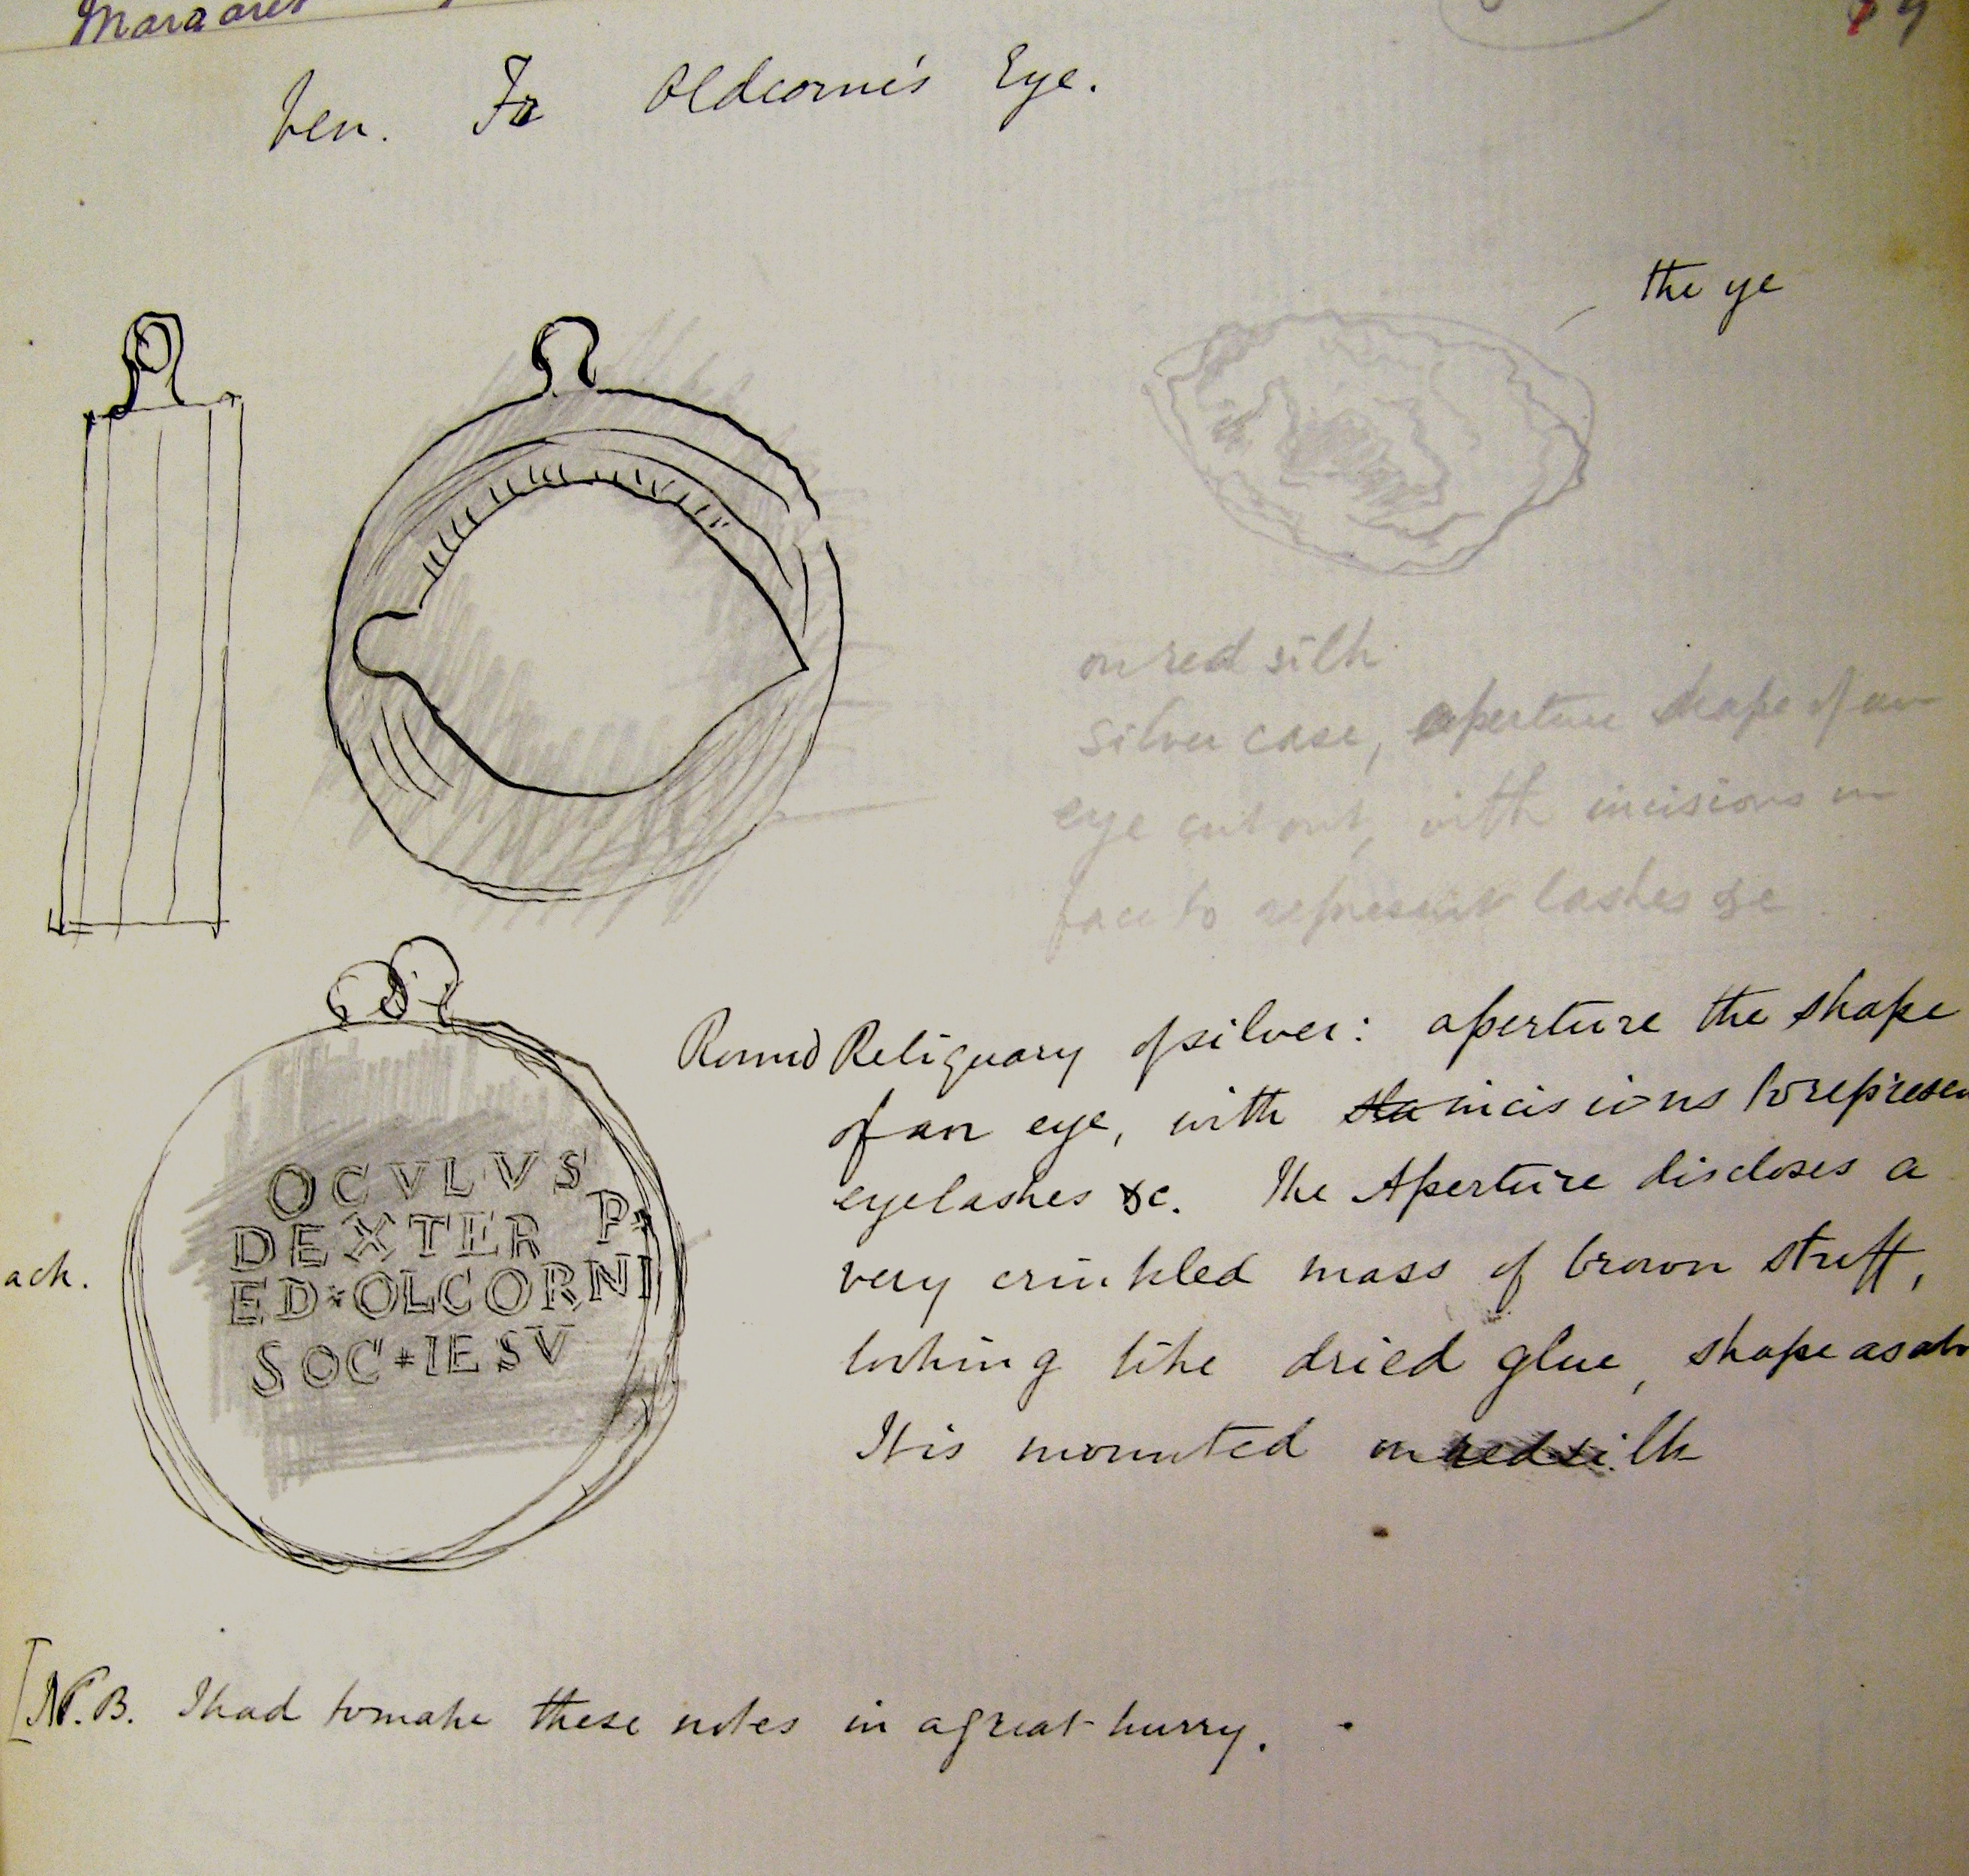 Page of handwritten notes with sketches. Main two sketches are of round reliquary and reverse, which has pencil rubbing of inscription found on it. There is also a pencil sketch of the eye.